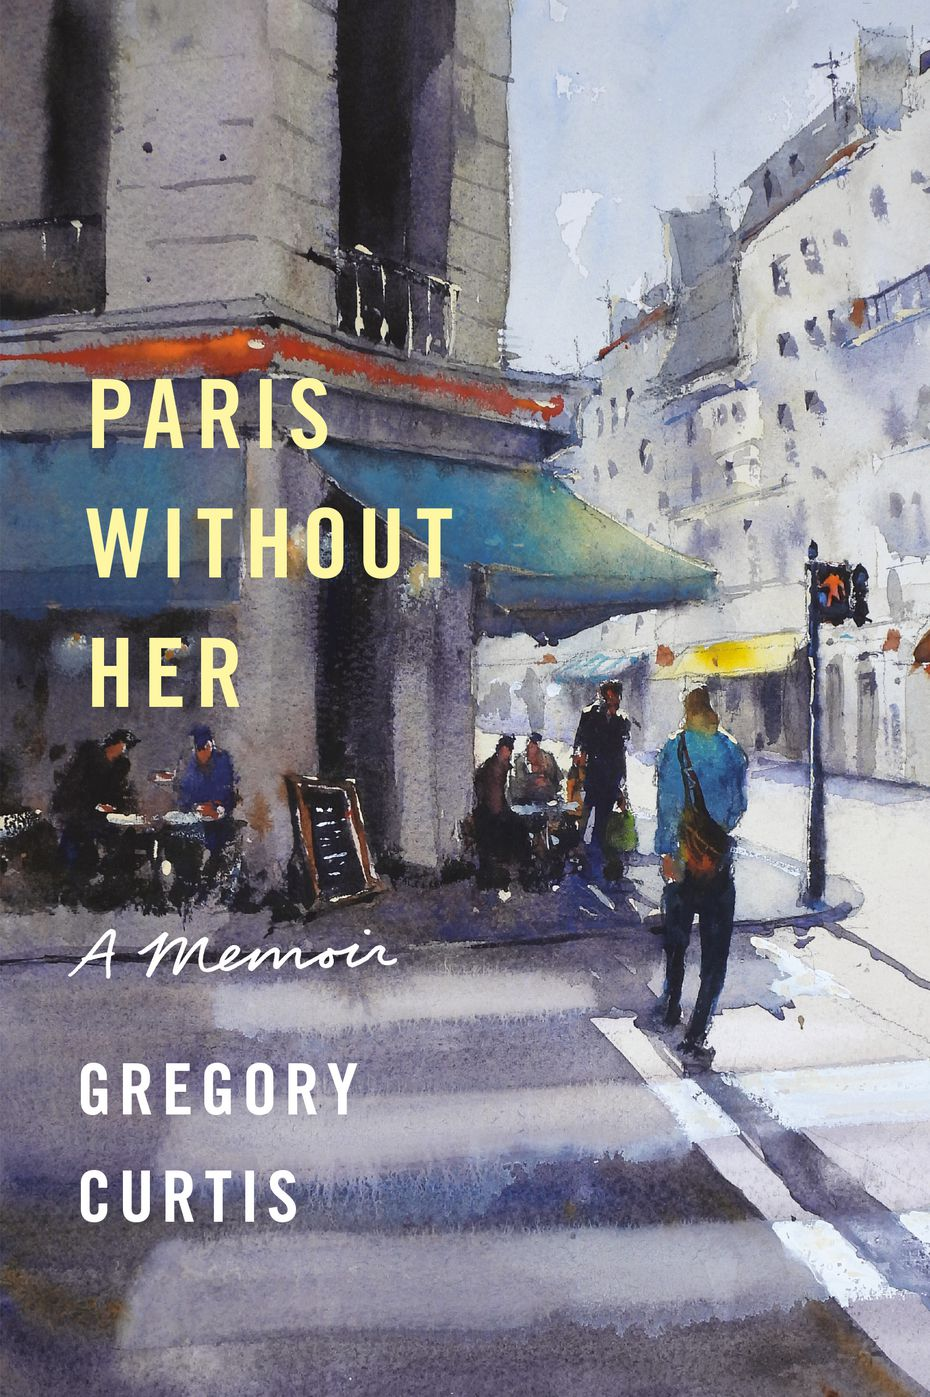 """In """"Paris Without Her: A Memoir,"""" Gregory Curtis offers a highly personal recollection of the best and worst of times, and on returning to the French city that he and his wife fell in love with."""